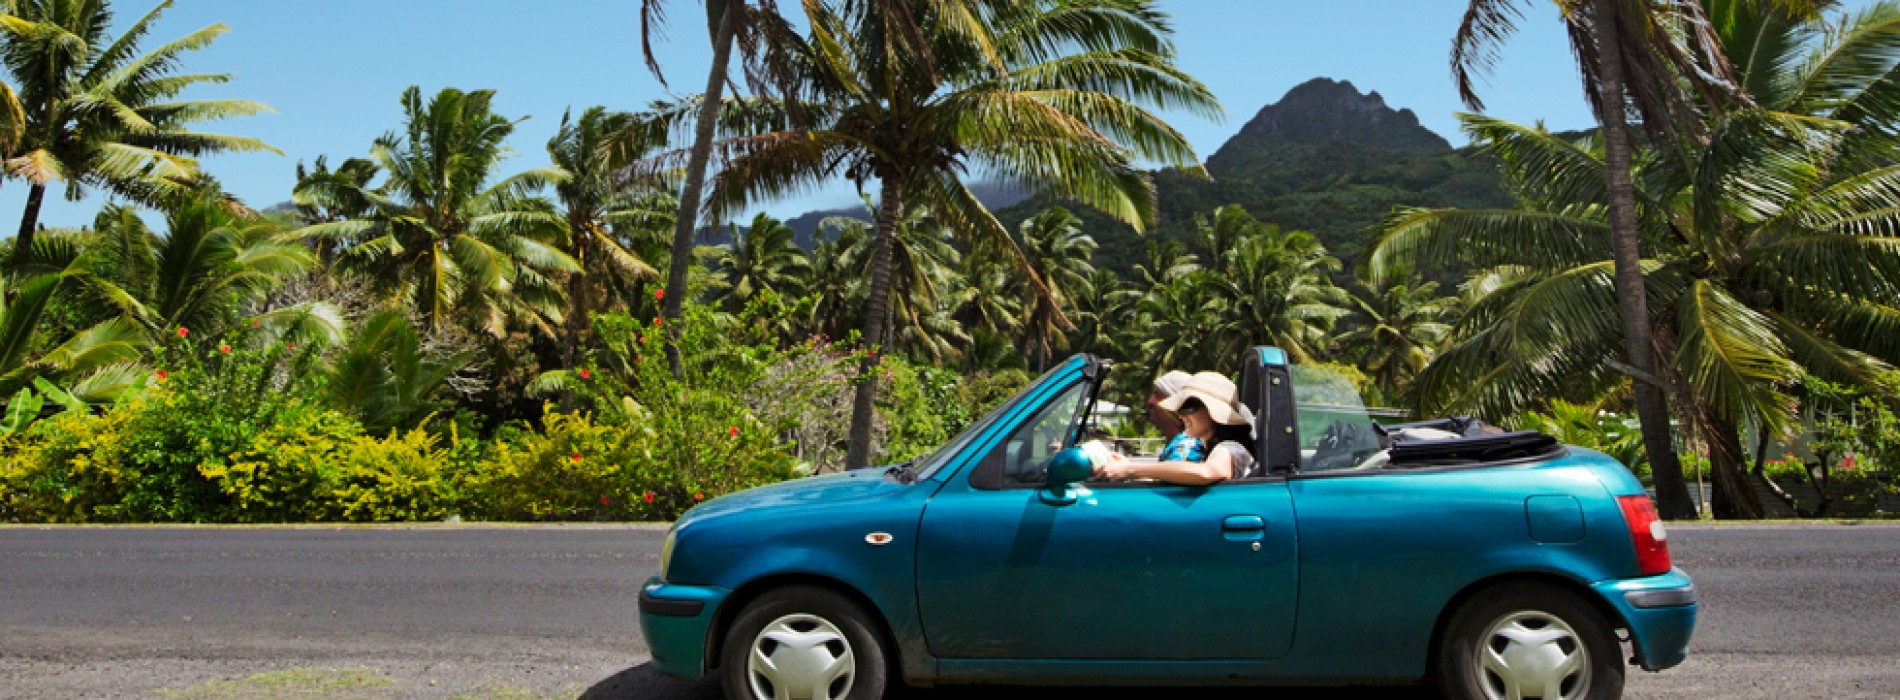 Travkart and Avis team up to roll out exclusive international self-drive holiday packages